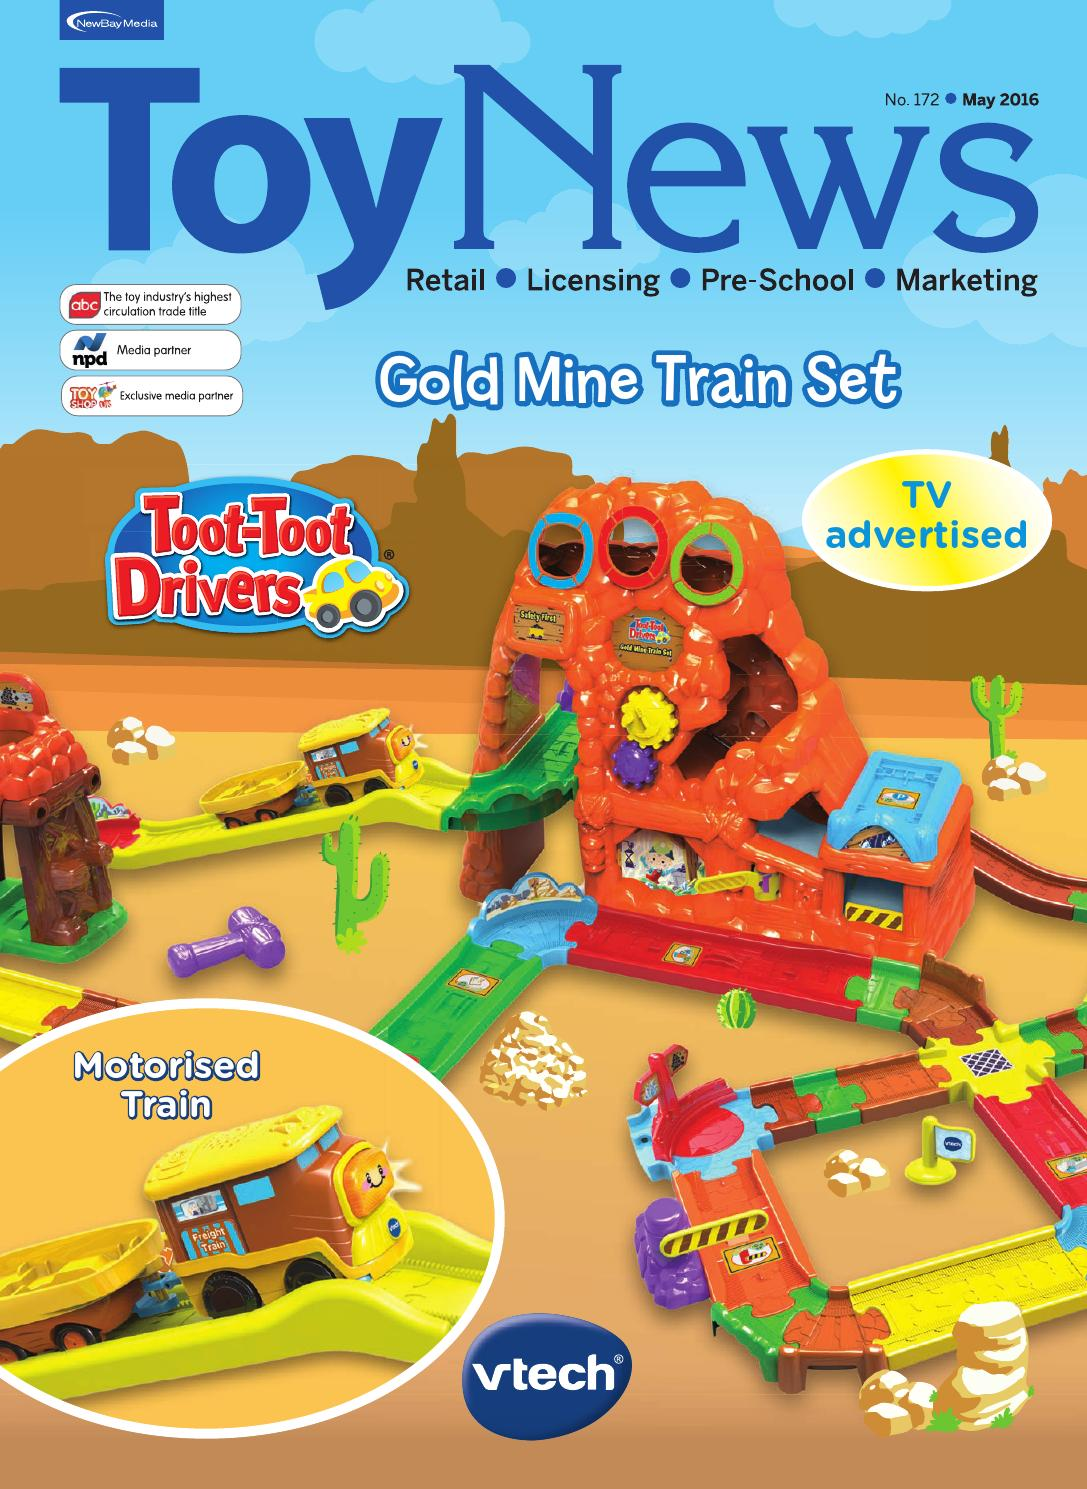 Toy News 172 May 2016 by Future PLC - issuu